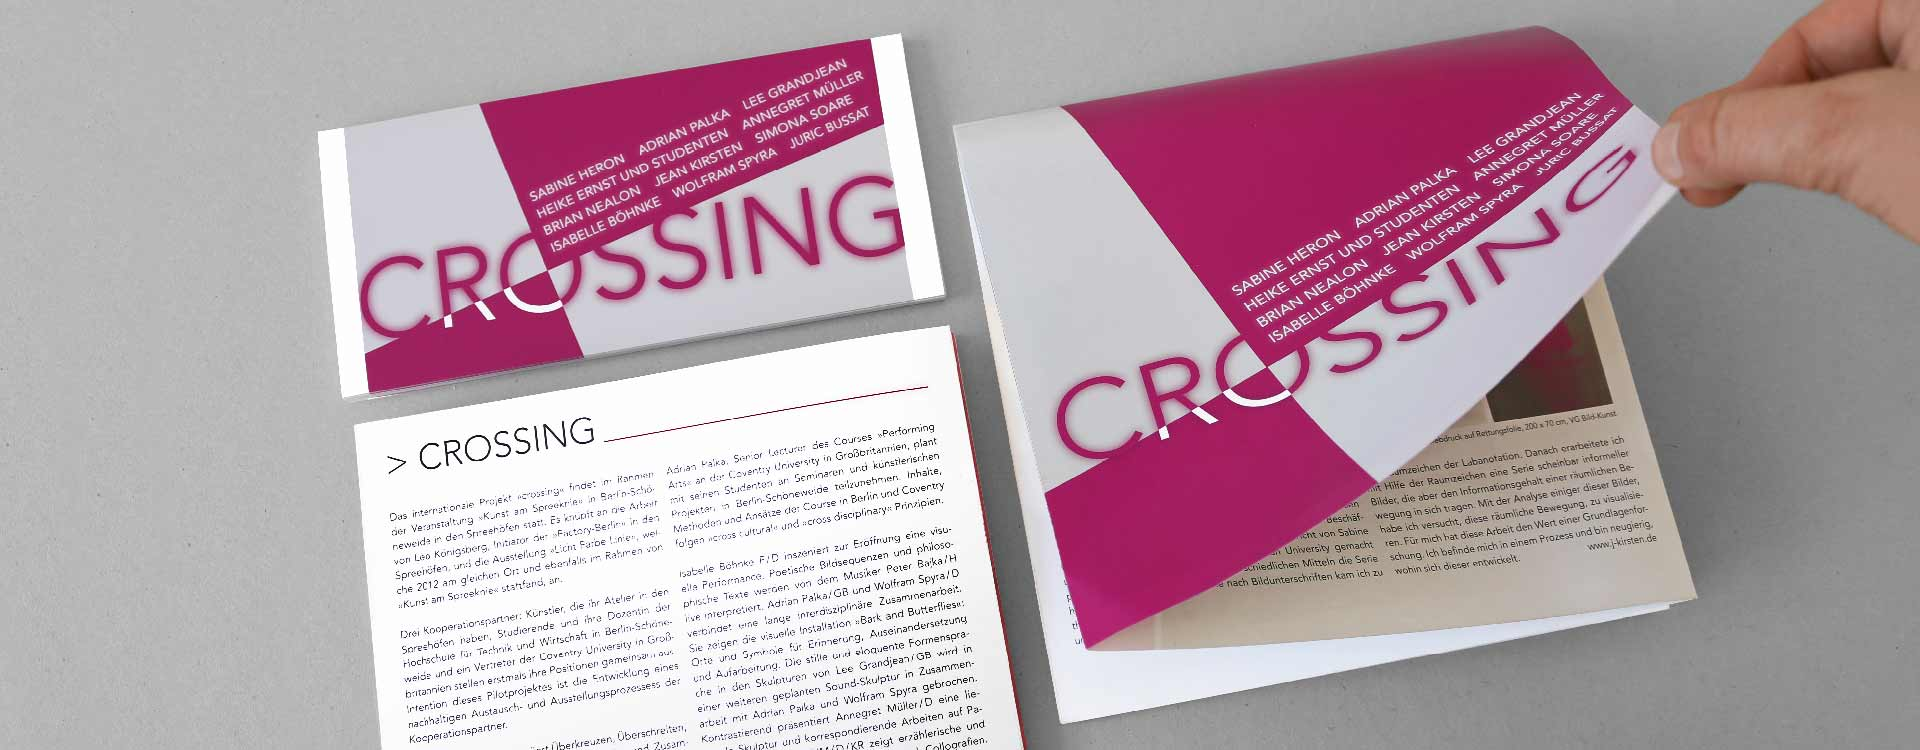 Invitation card for the exhibition Crossing in the Spreehöfen in Berlin Schöneweide; Design: Kattrin Richter | Graphic Design Studio